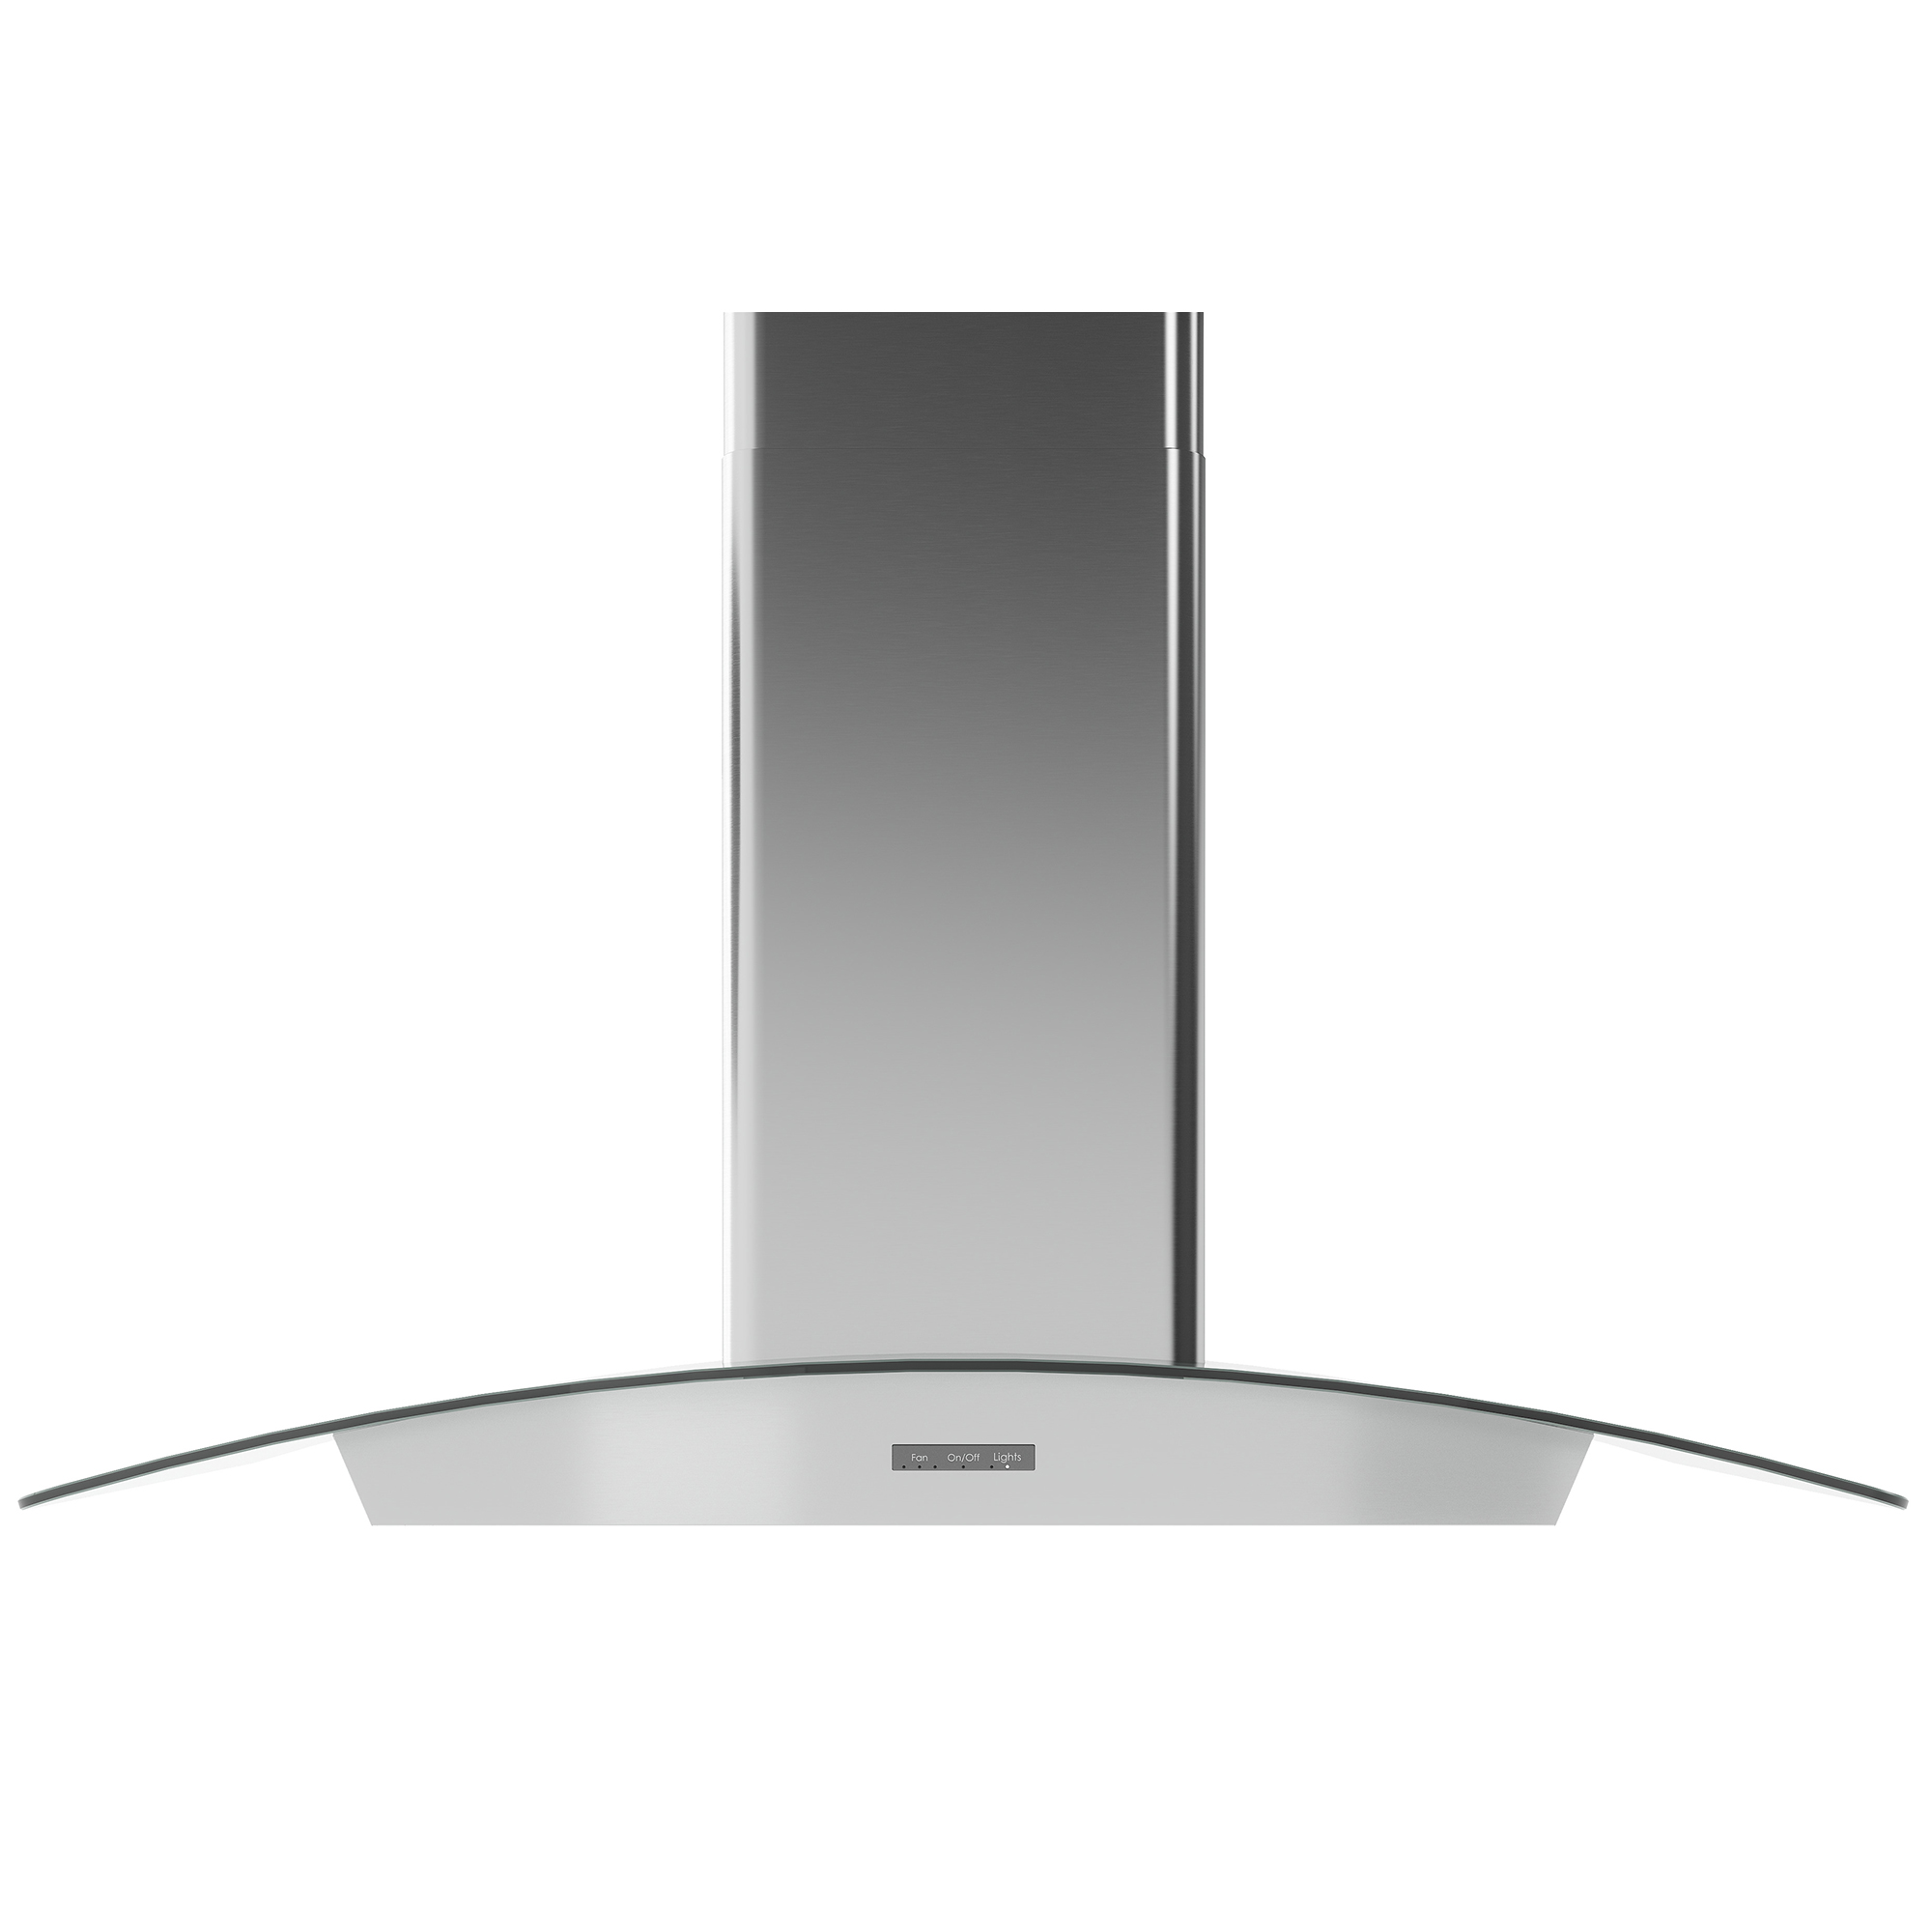 zephyr 30 wall mount chimney convertible range hood with 600 cfm blower stainless steel